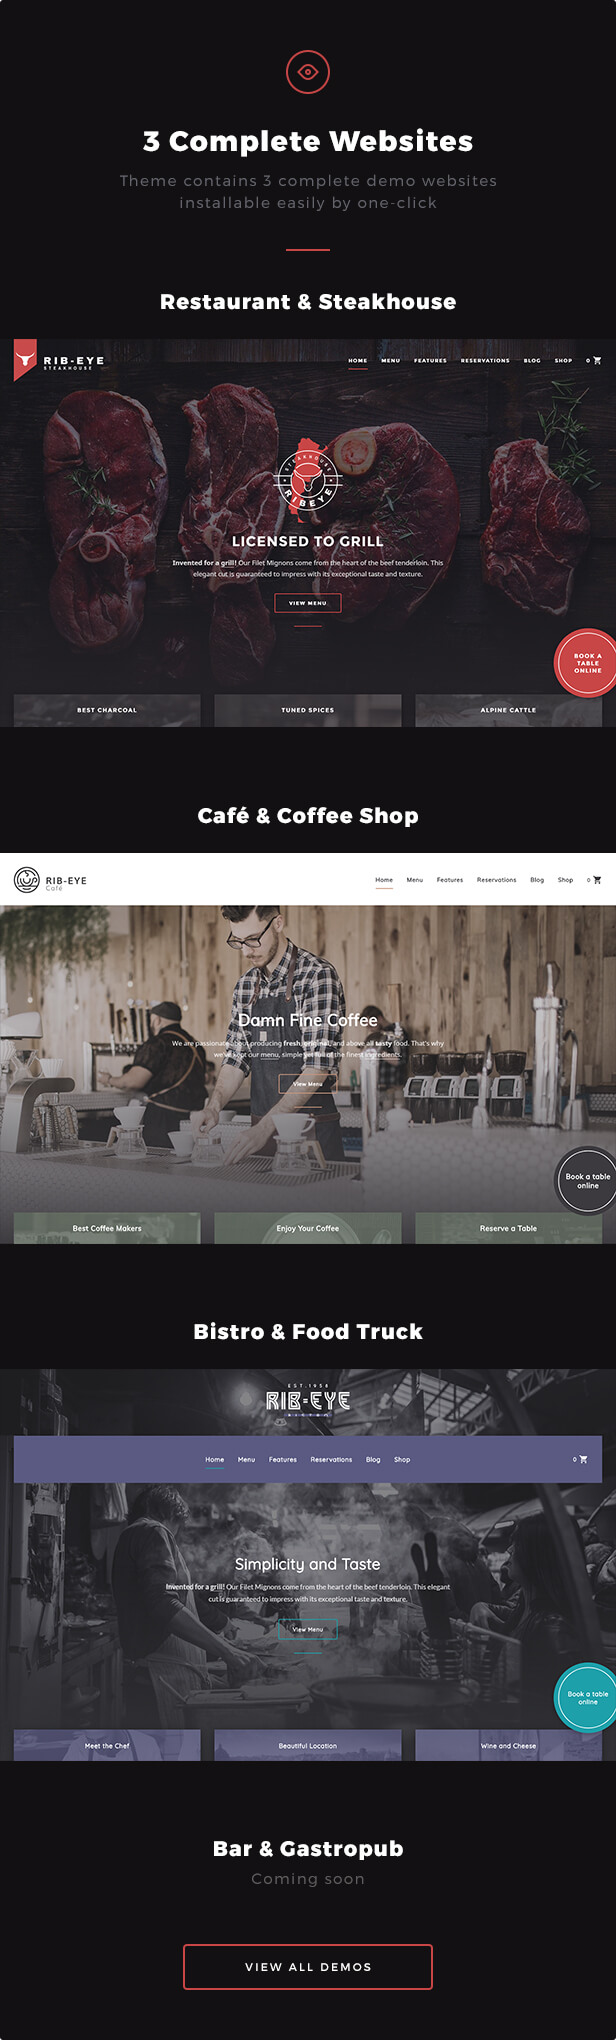 3 Complete Websites: Theme contains 3 complete demo websites installable easily by one-click - Restaurant & Steakhouse, Café & Coffee Shop, Bistro & Food Truck  Download Rib-Eye — Steakhouse WordPress Theme nulled 02 ribeye demos